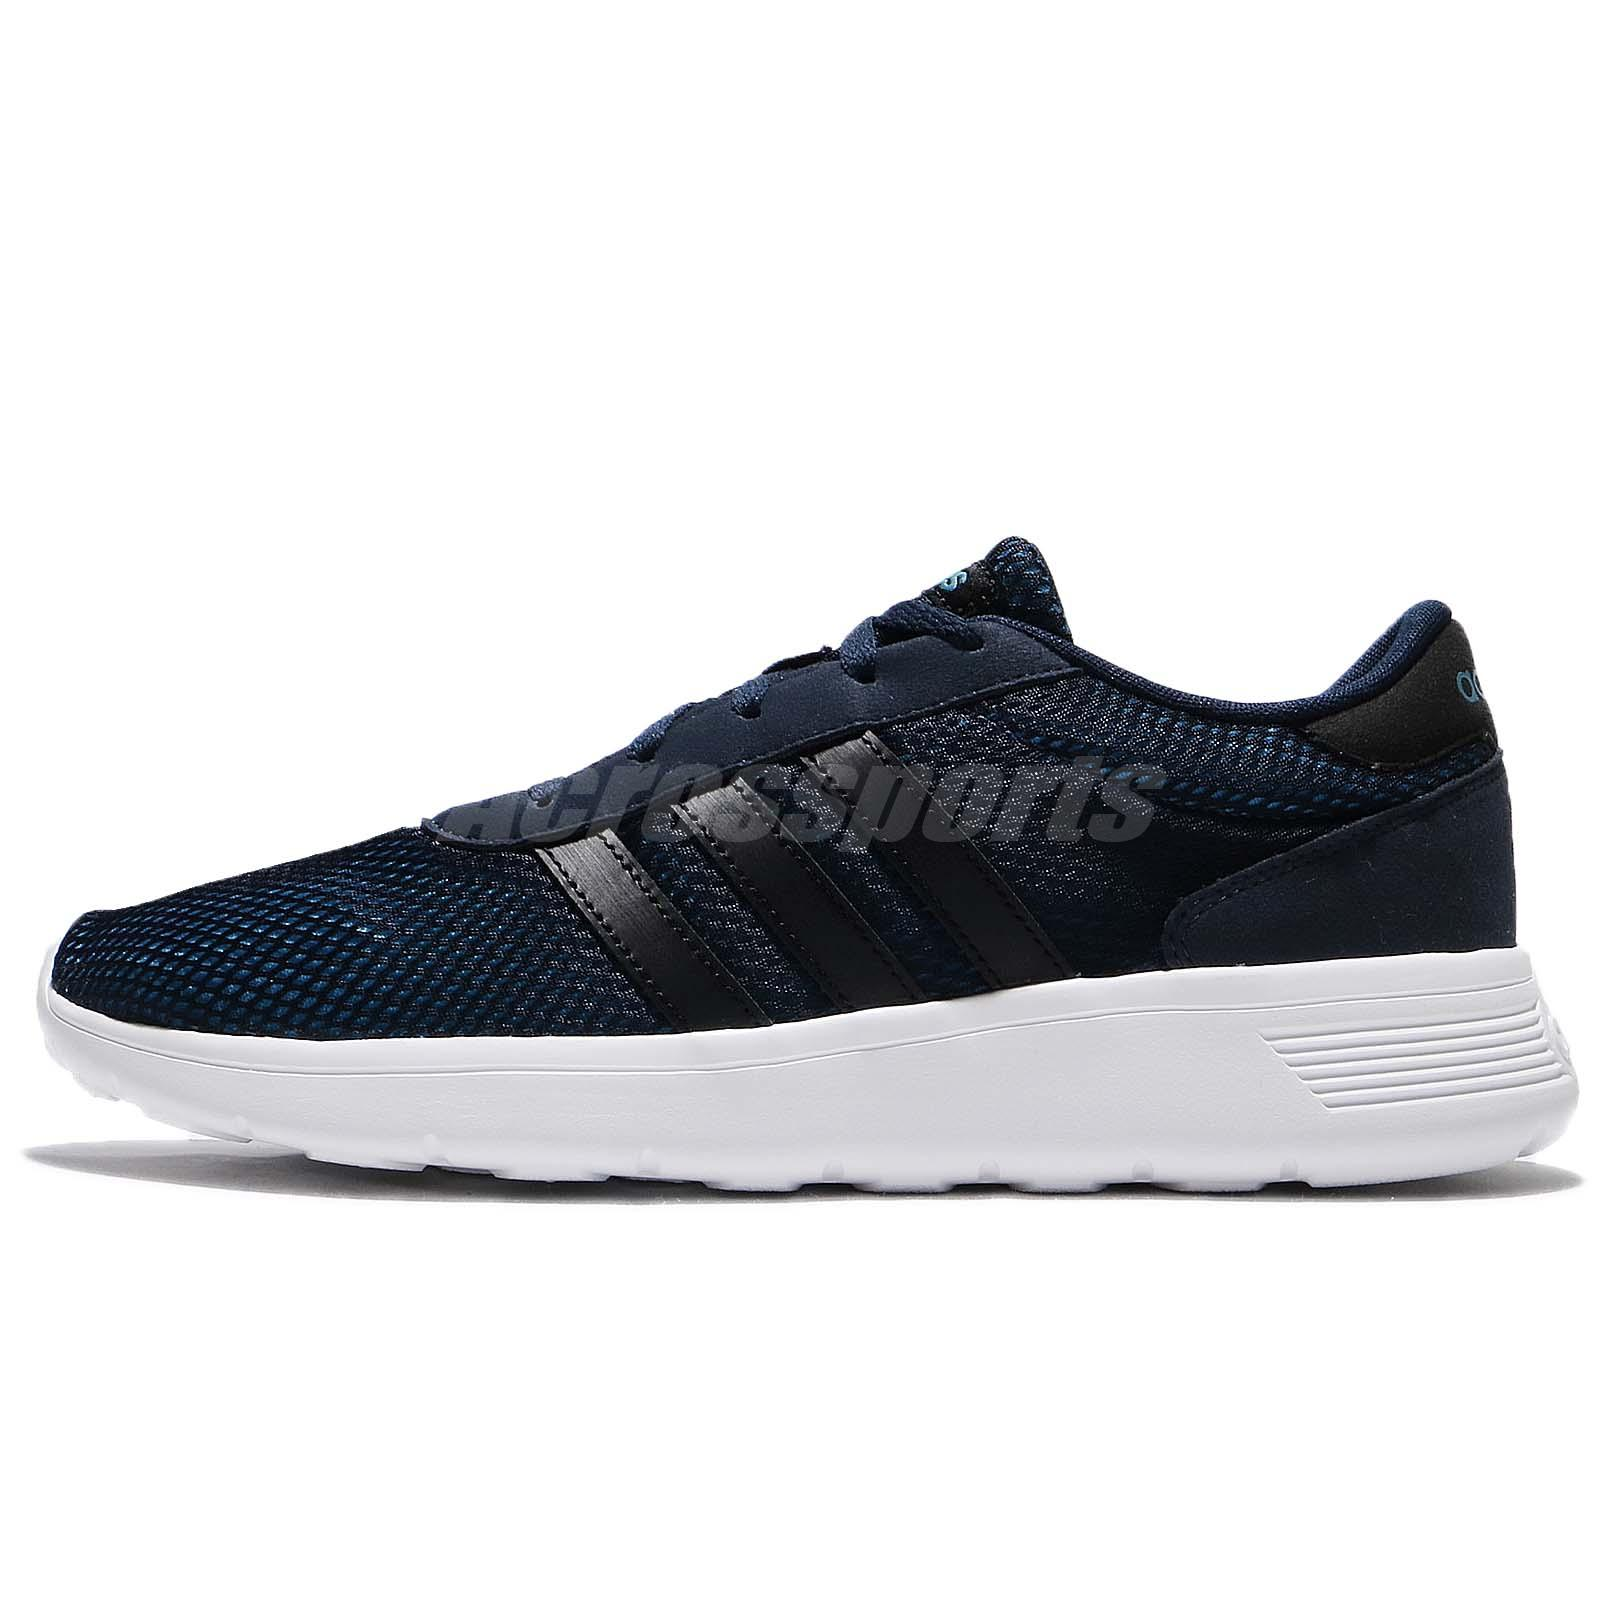 adidas neo men's lite racer black silver and solblu running shoes